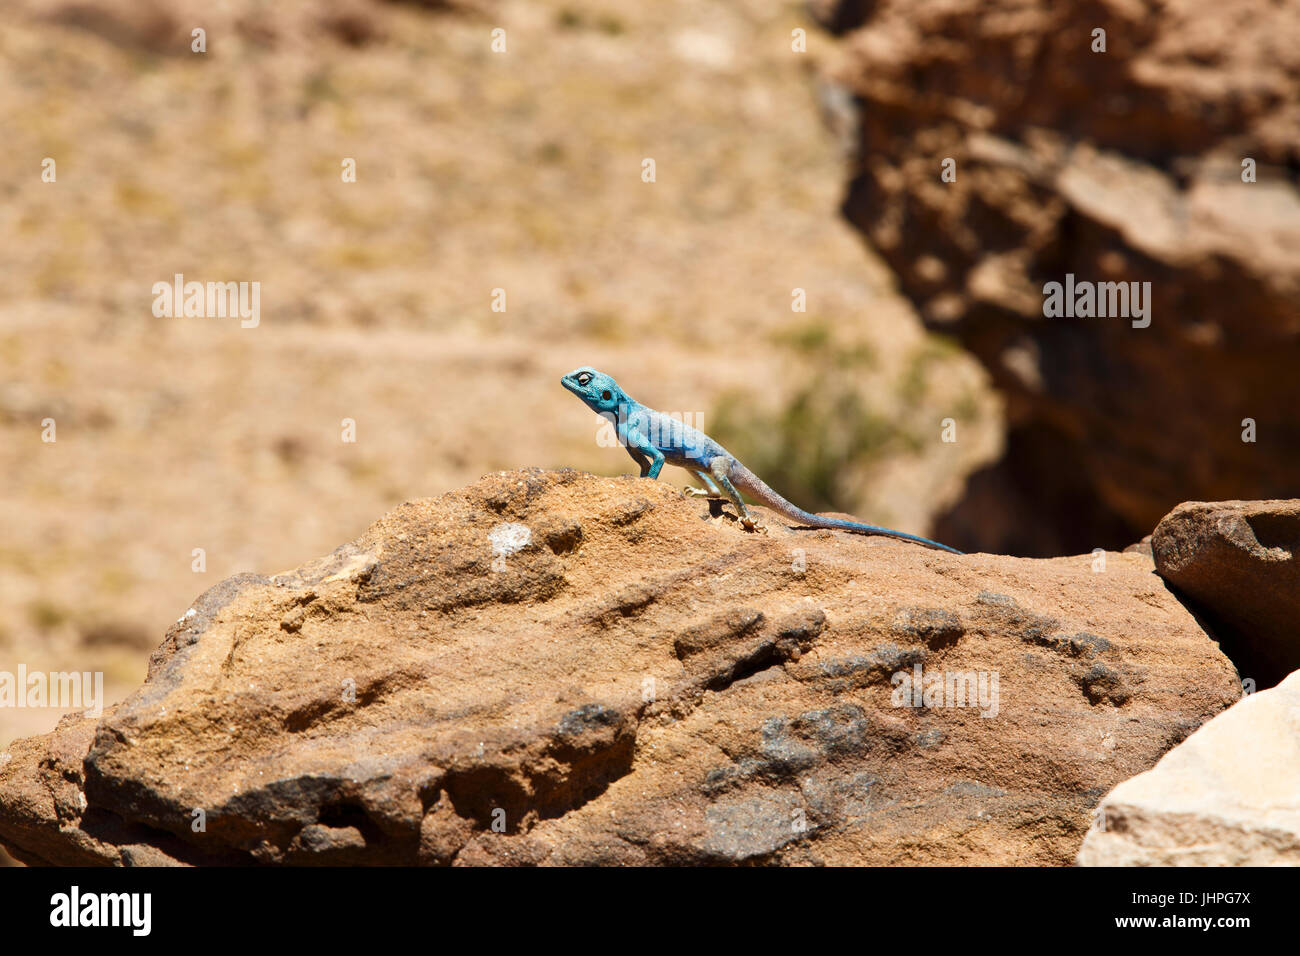 Blue Sinai lizard in Petra - Stock Image